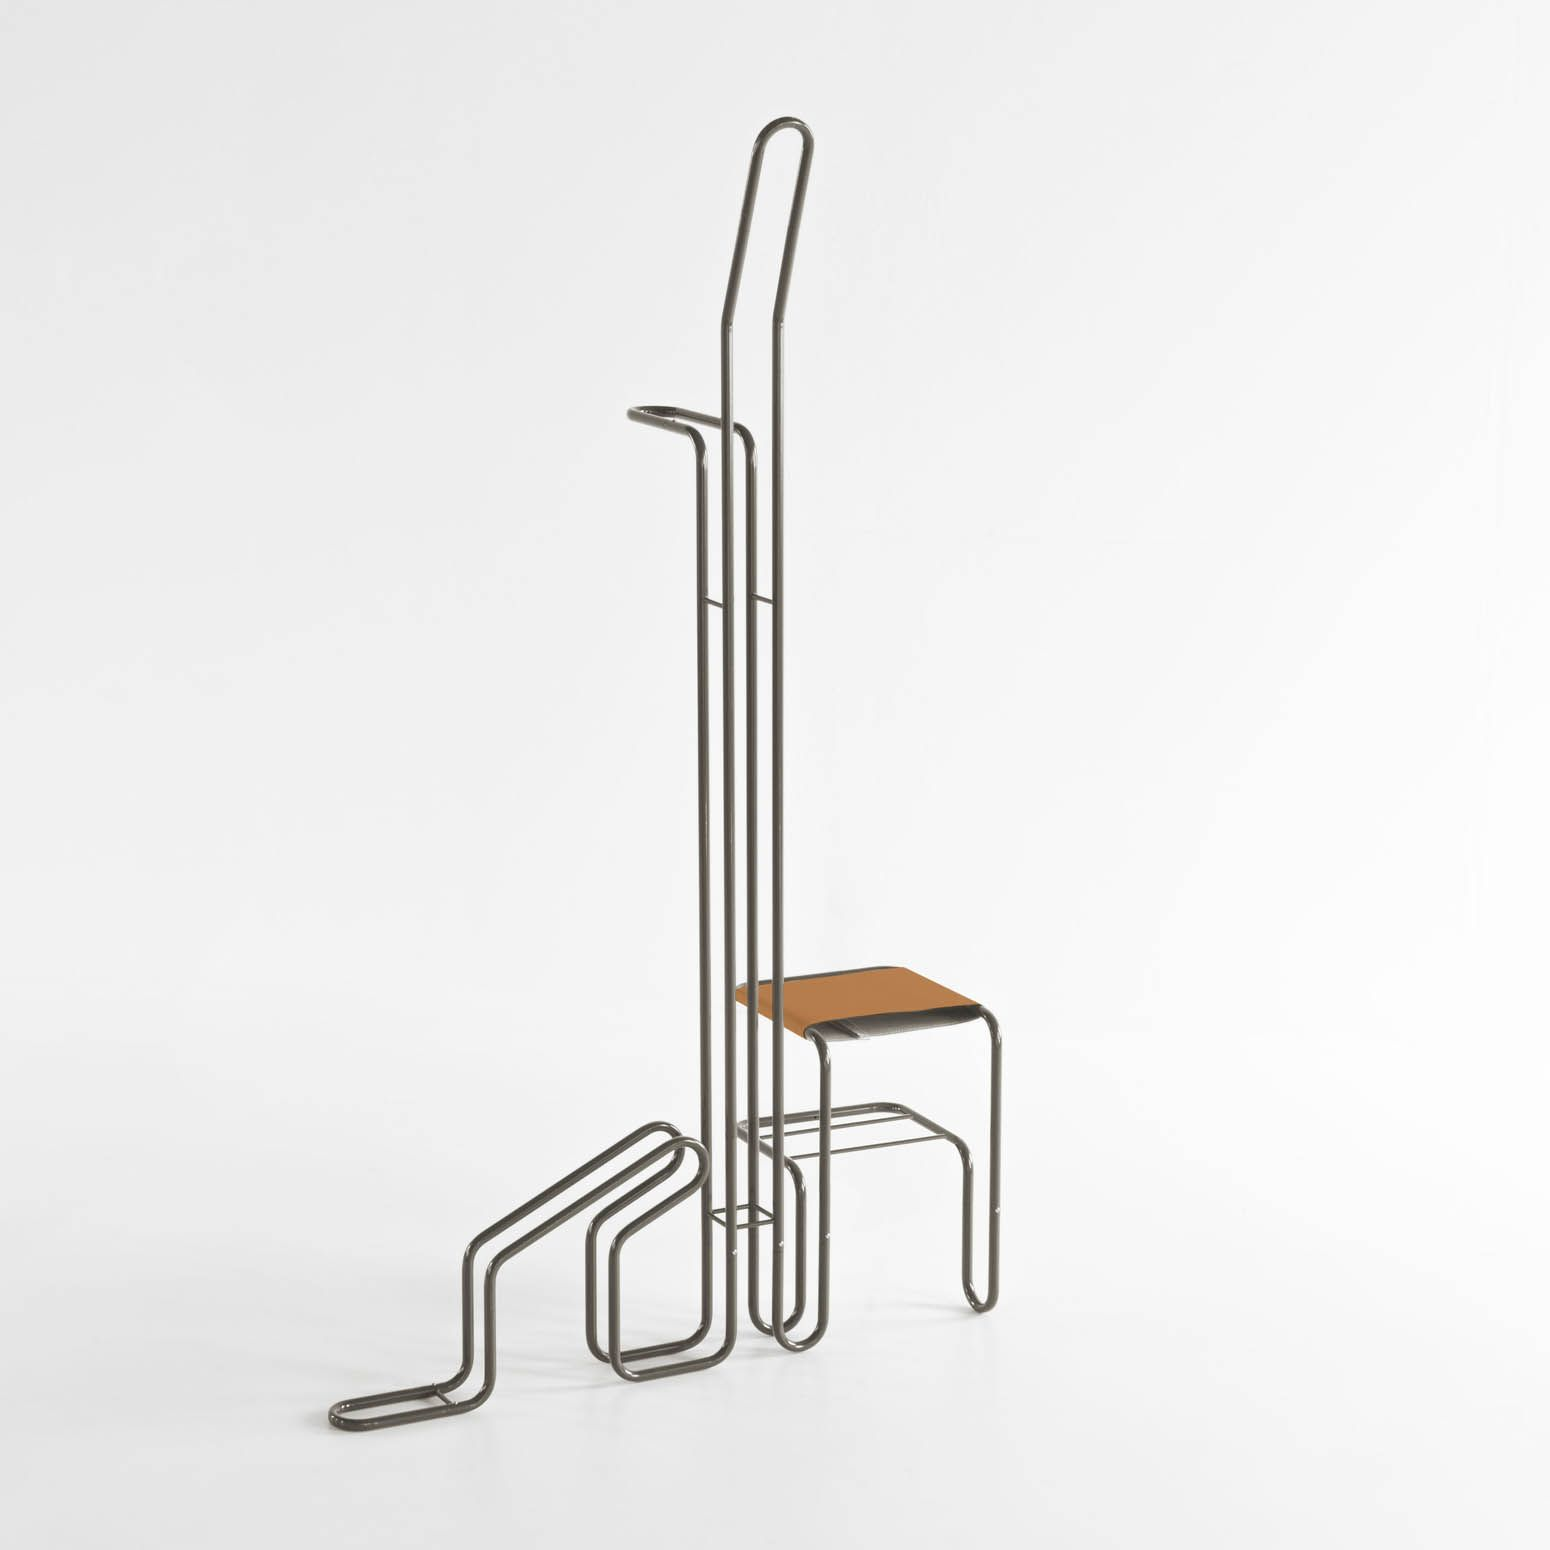 Velodromo / coat rack and bike stand / design Bastian Hoeges / Formabilio